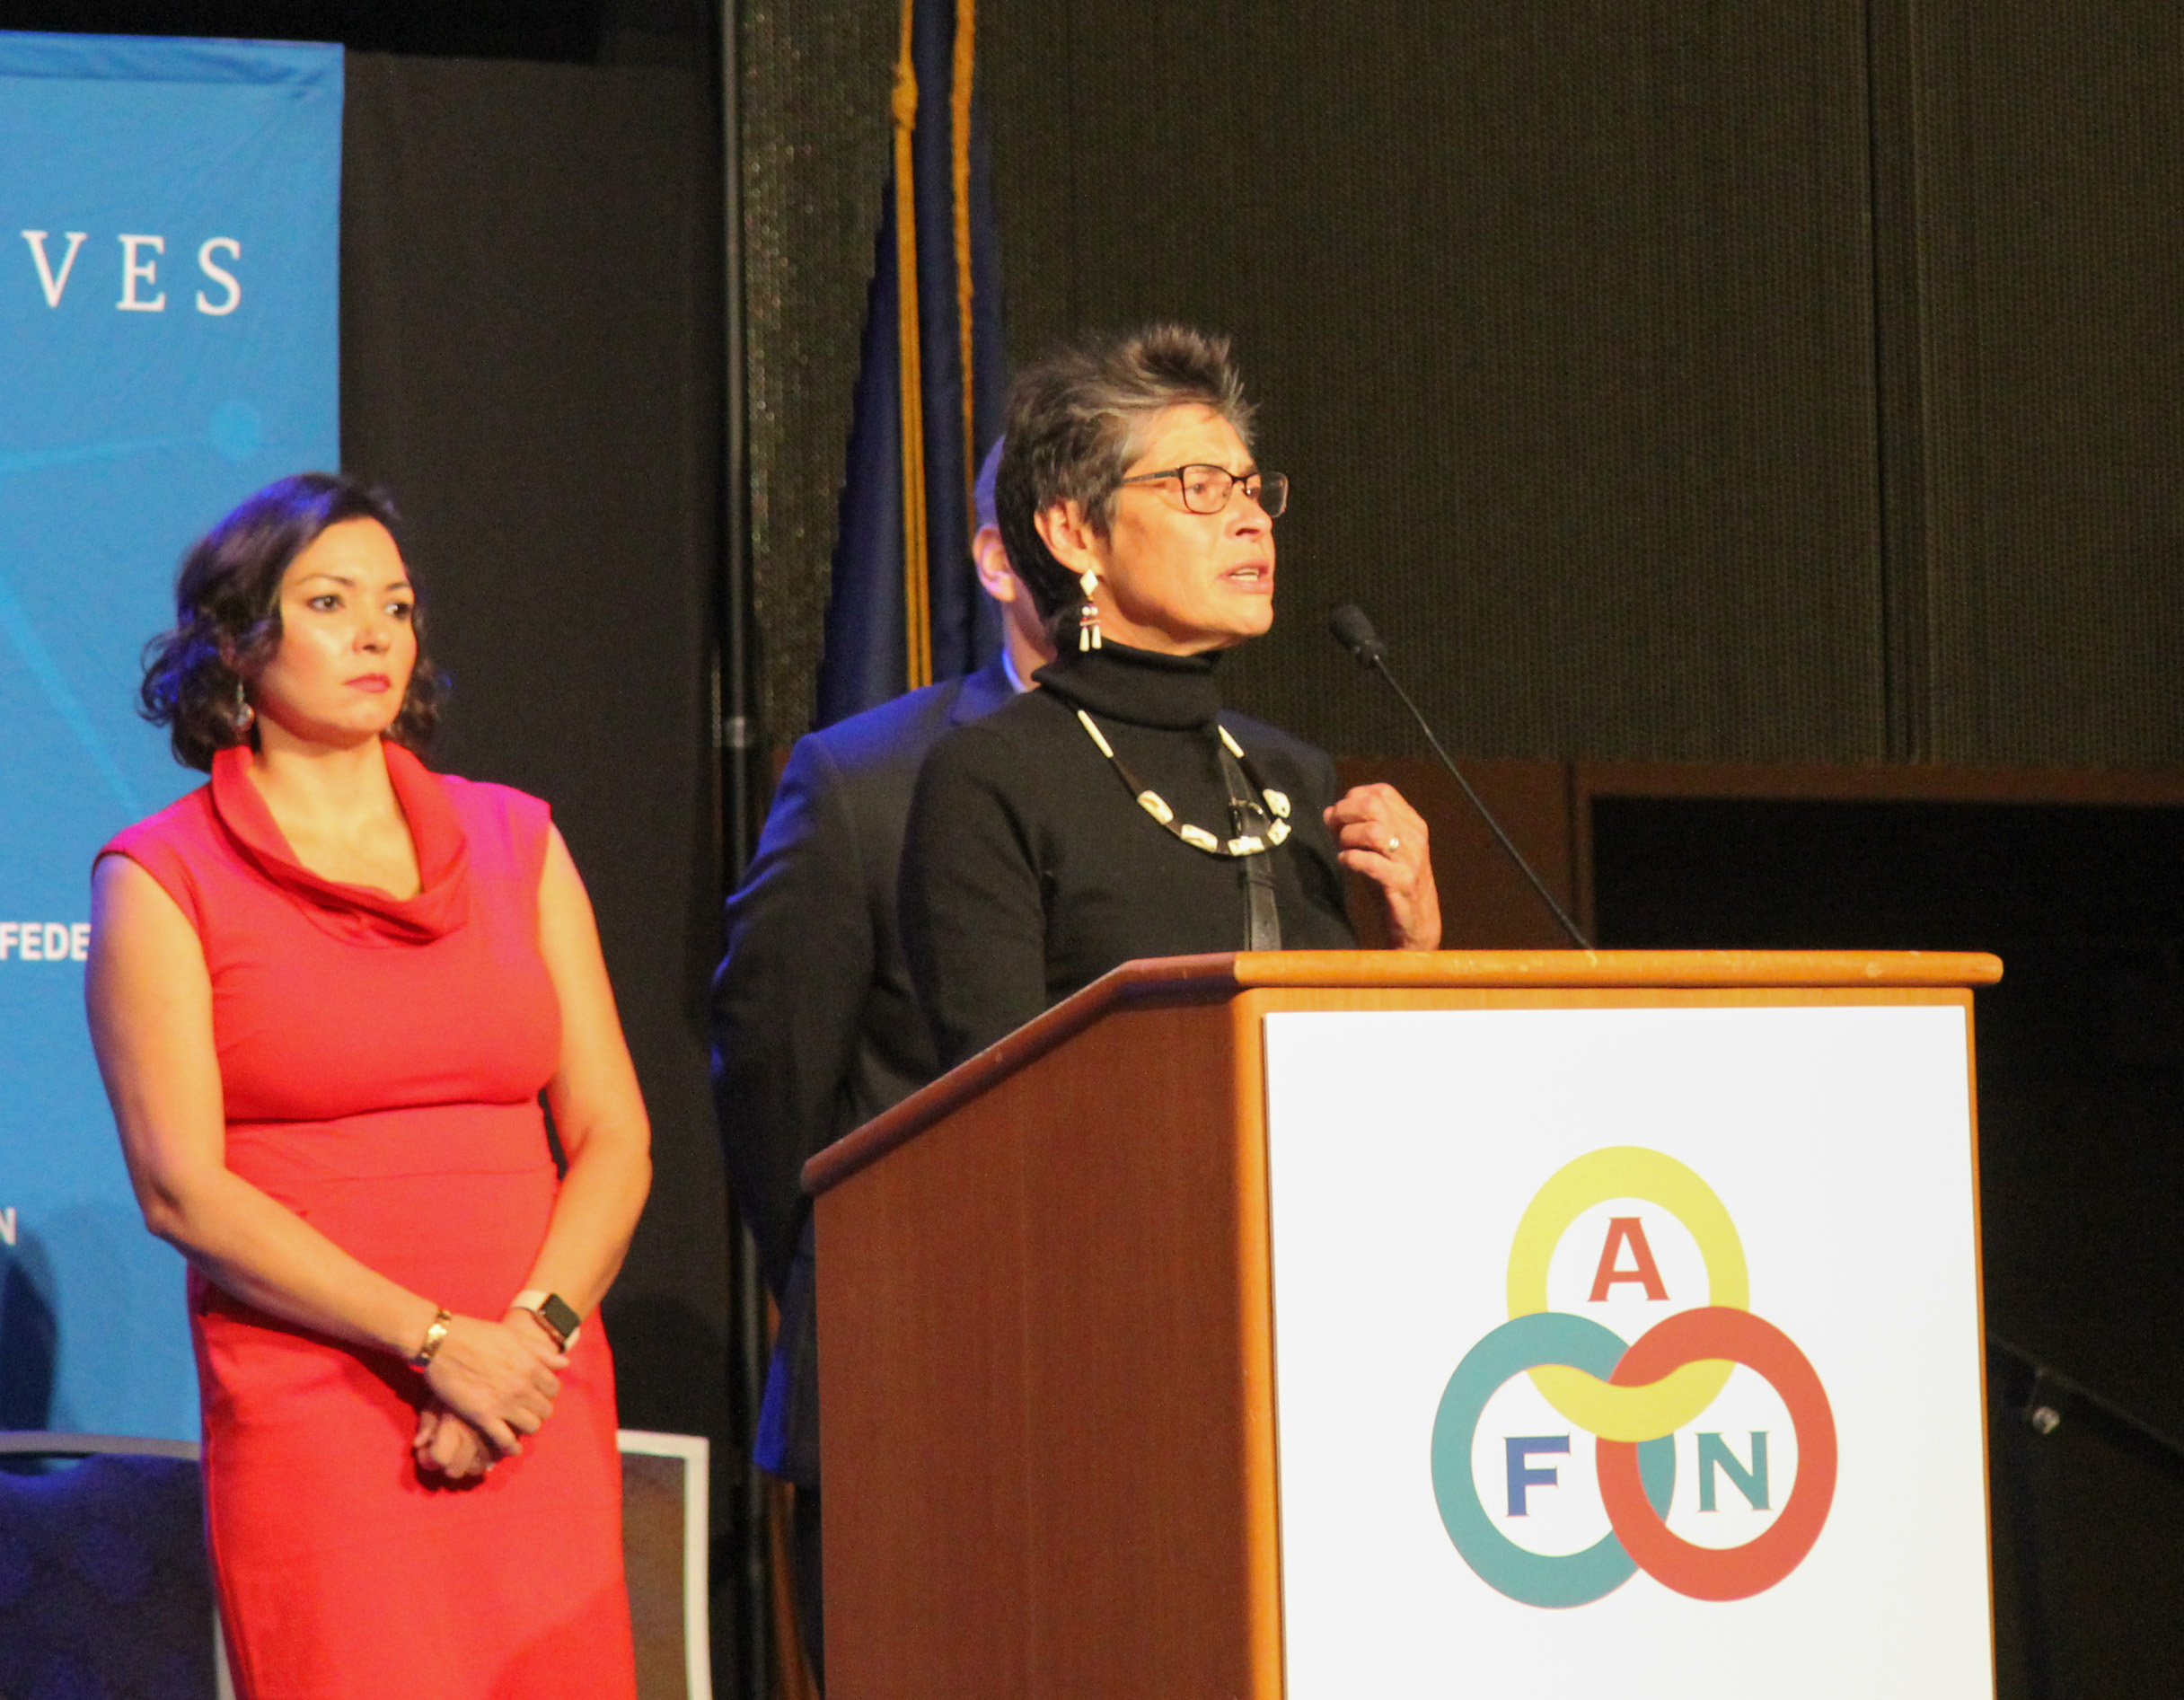 Defending Native women from violence remains hot topic at AFN